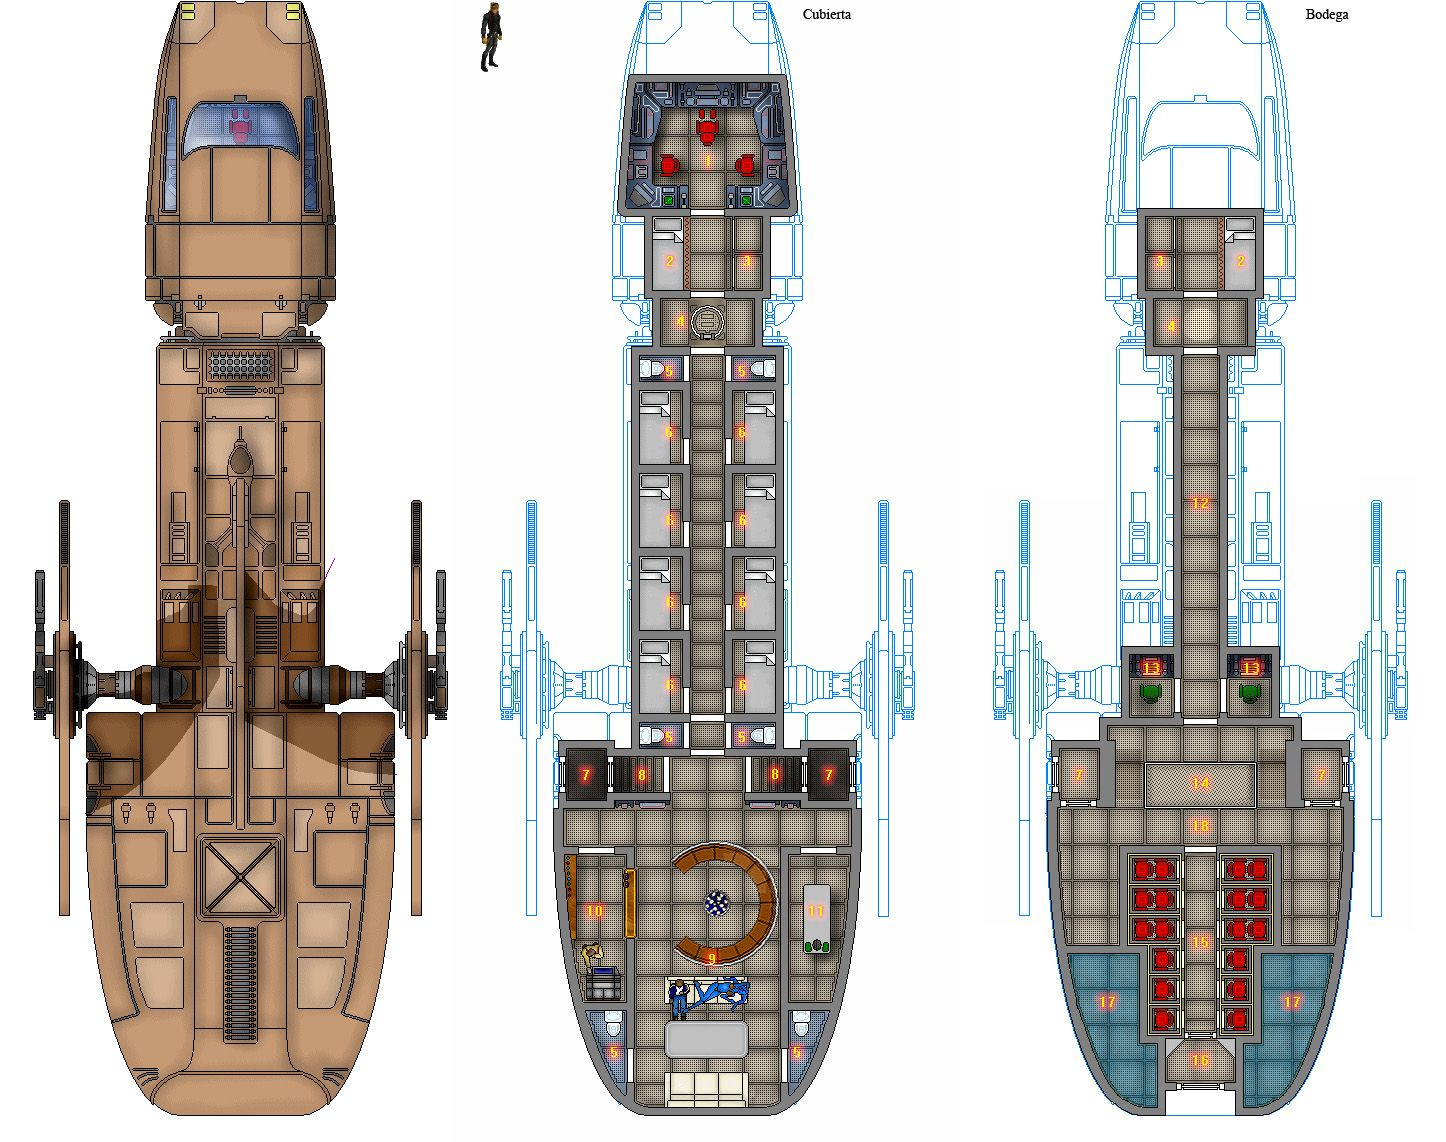 space container ship deck plan - photo #42